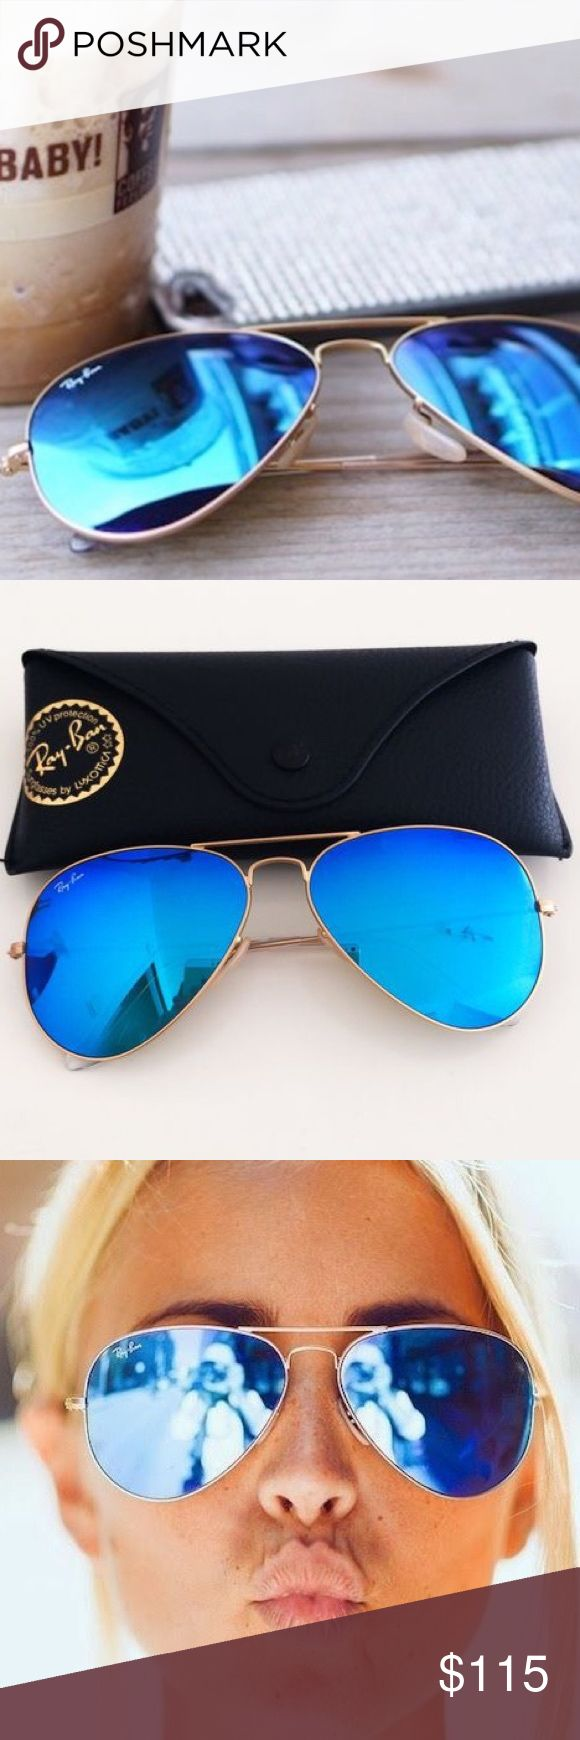 ray bans sunglasses cheap